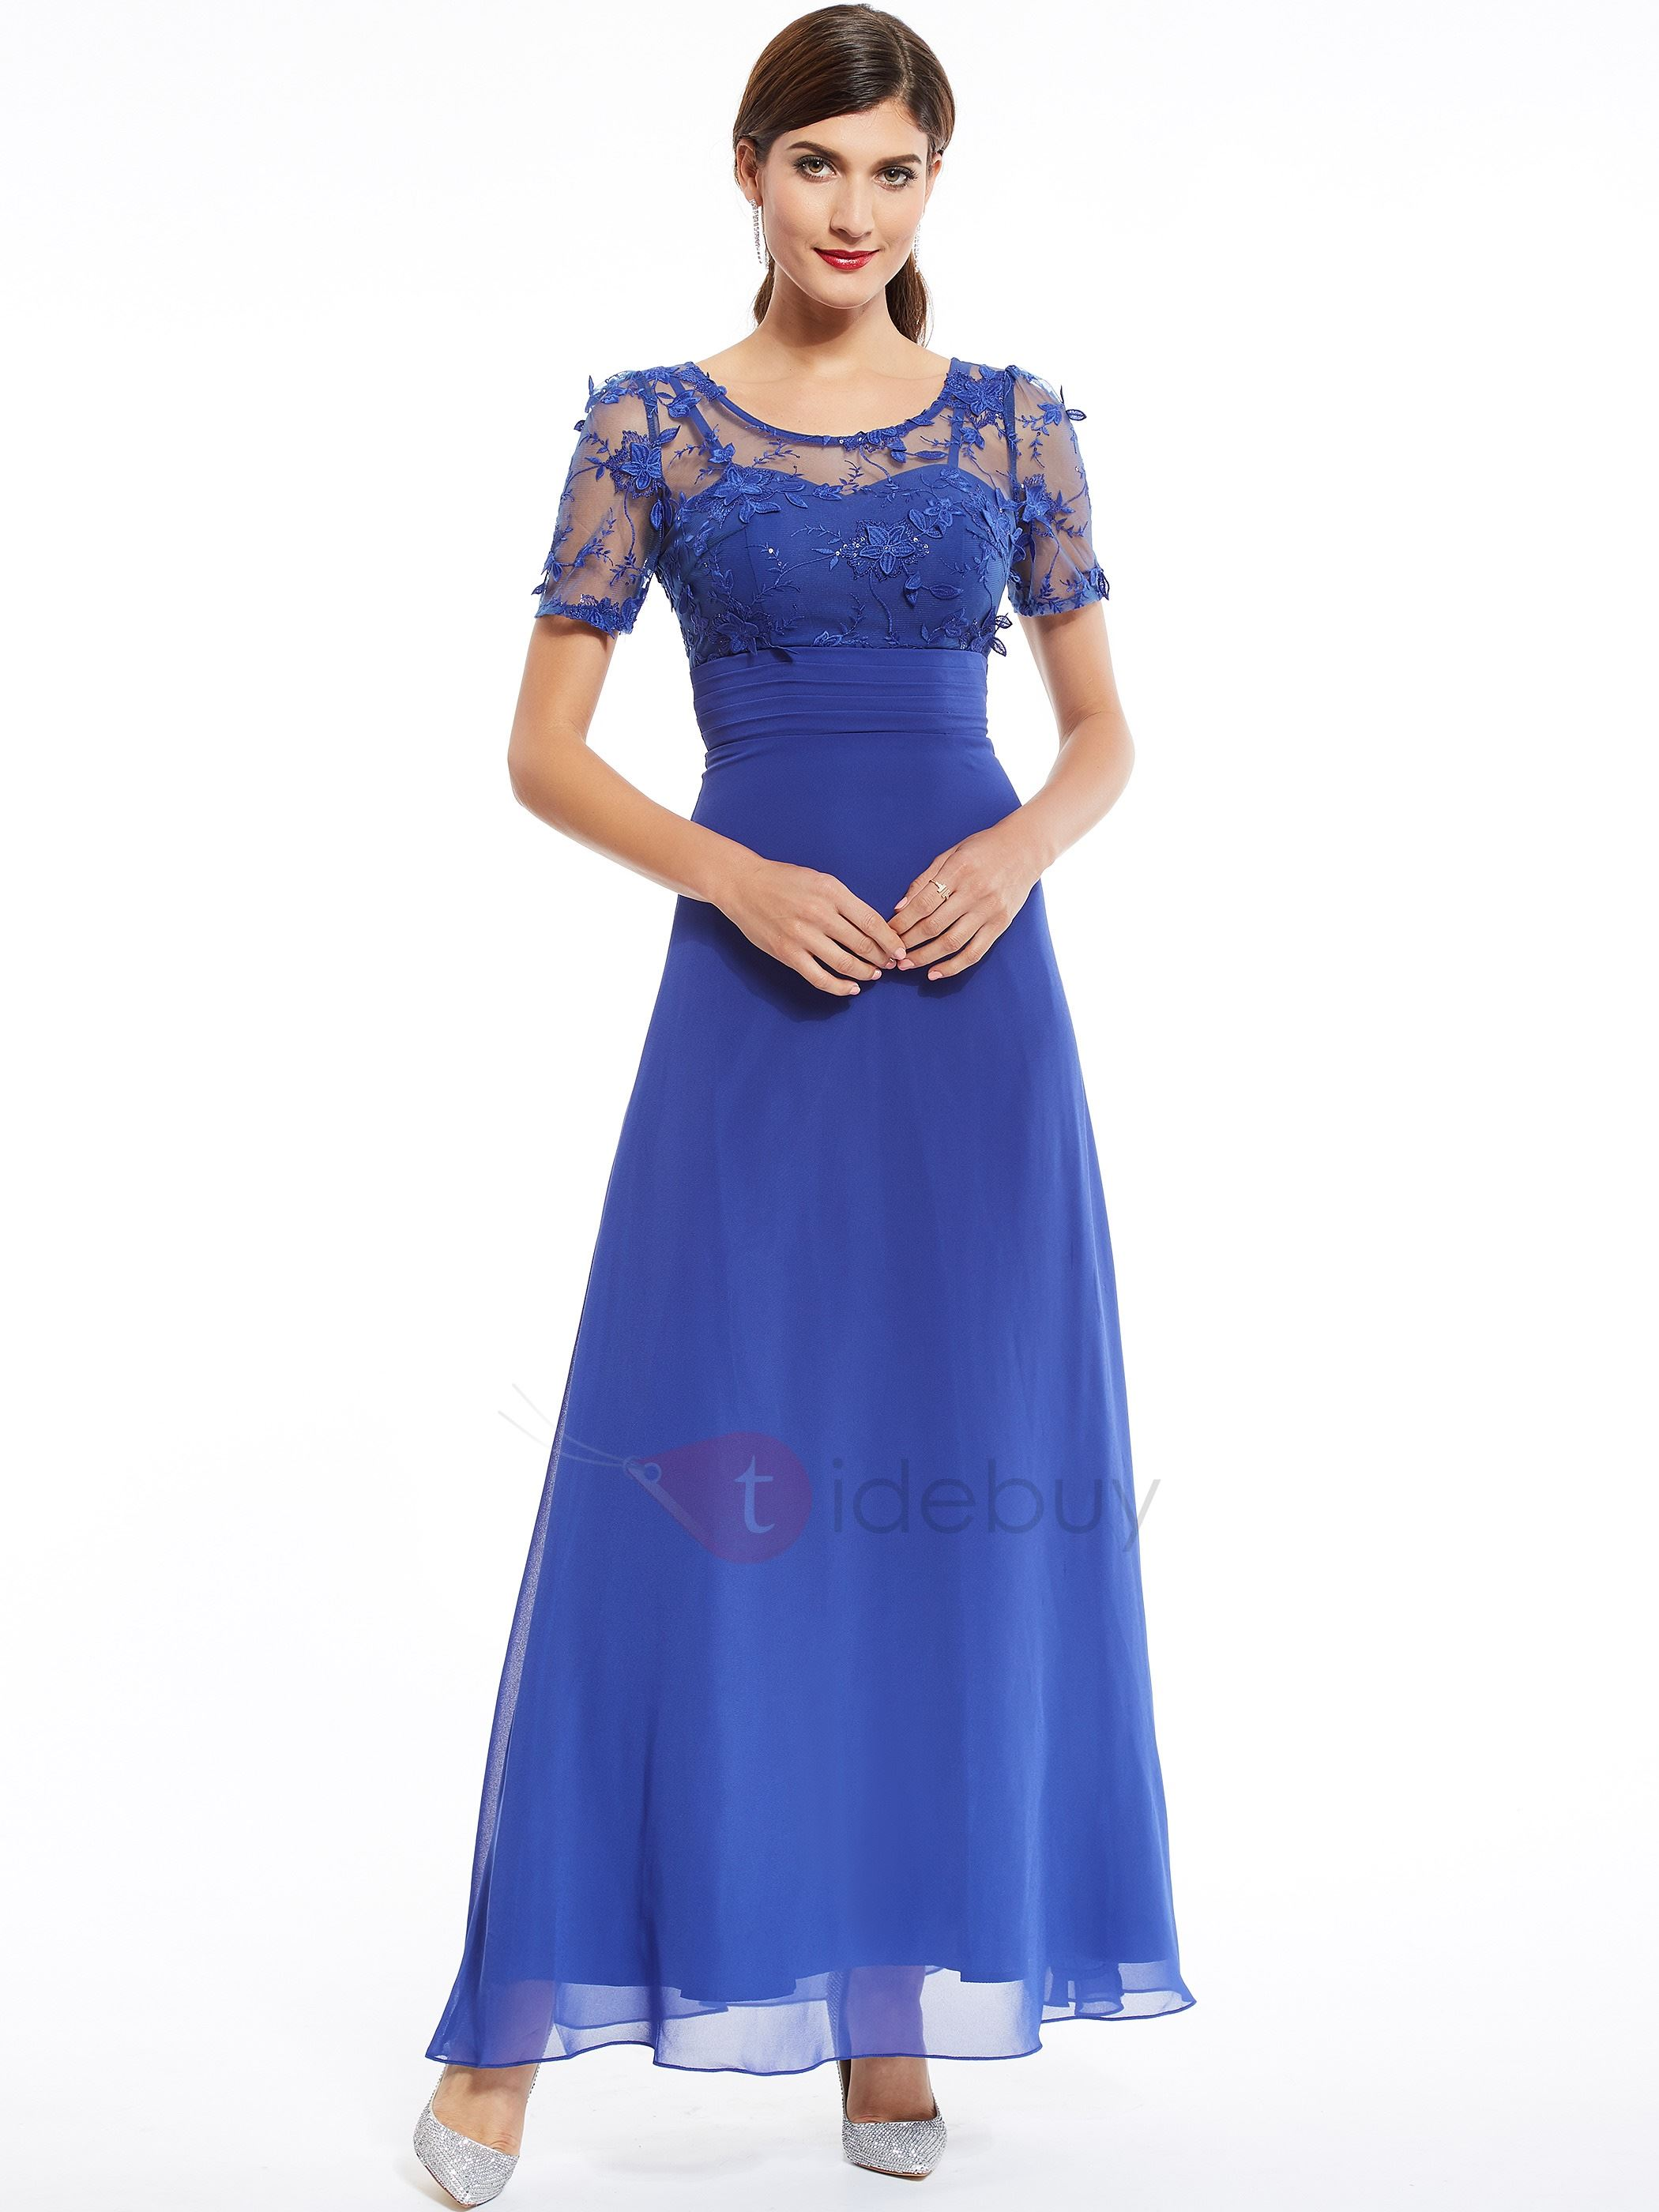 Scoop Neck Appliques Beading Short Sleeves Evening Dress